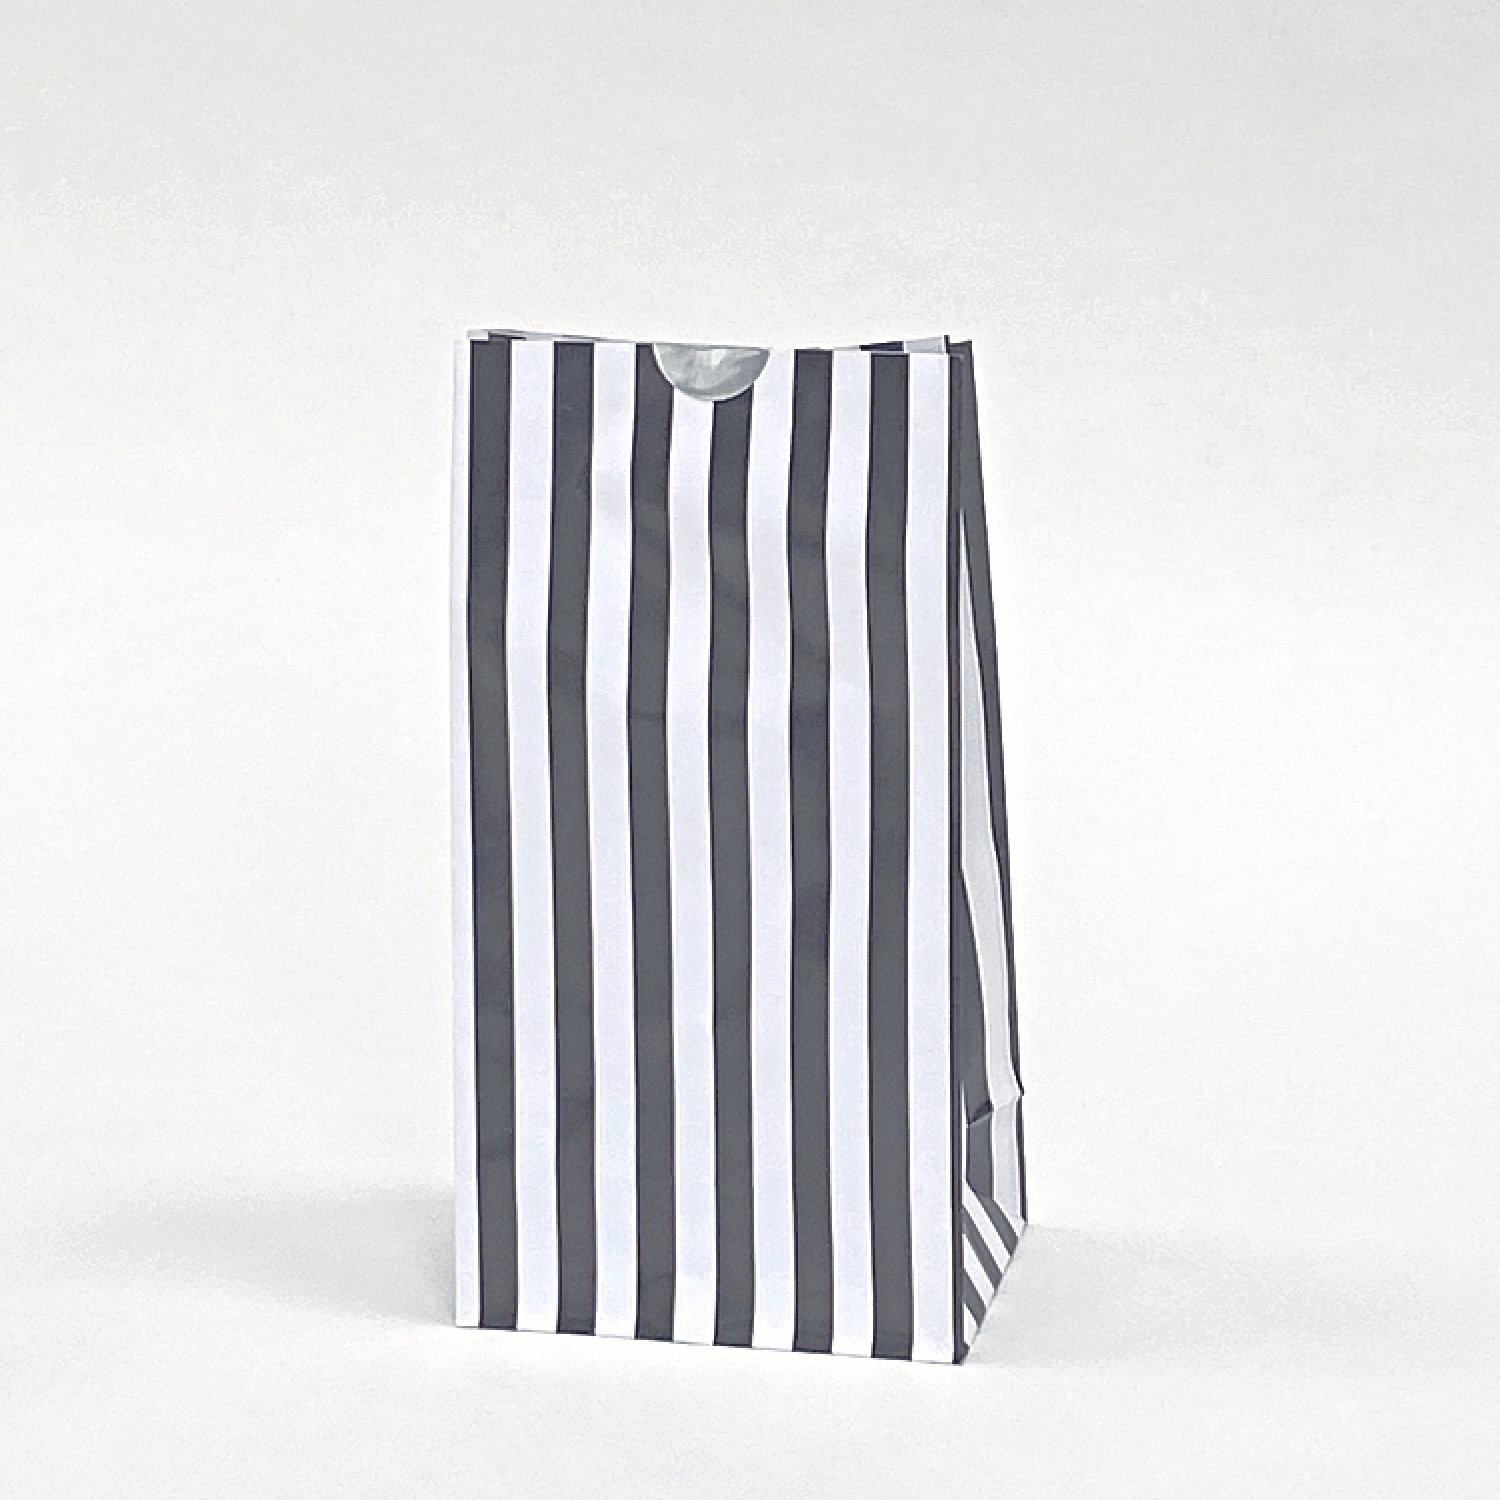 Black striped Party Bags | Block Bottom Paper Bags